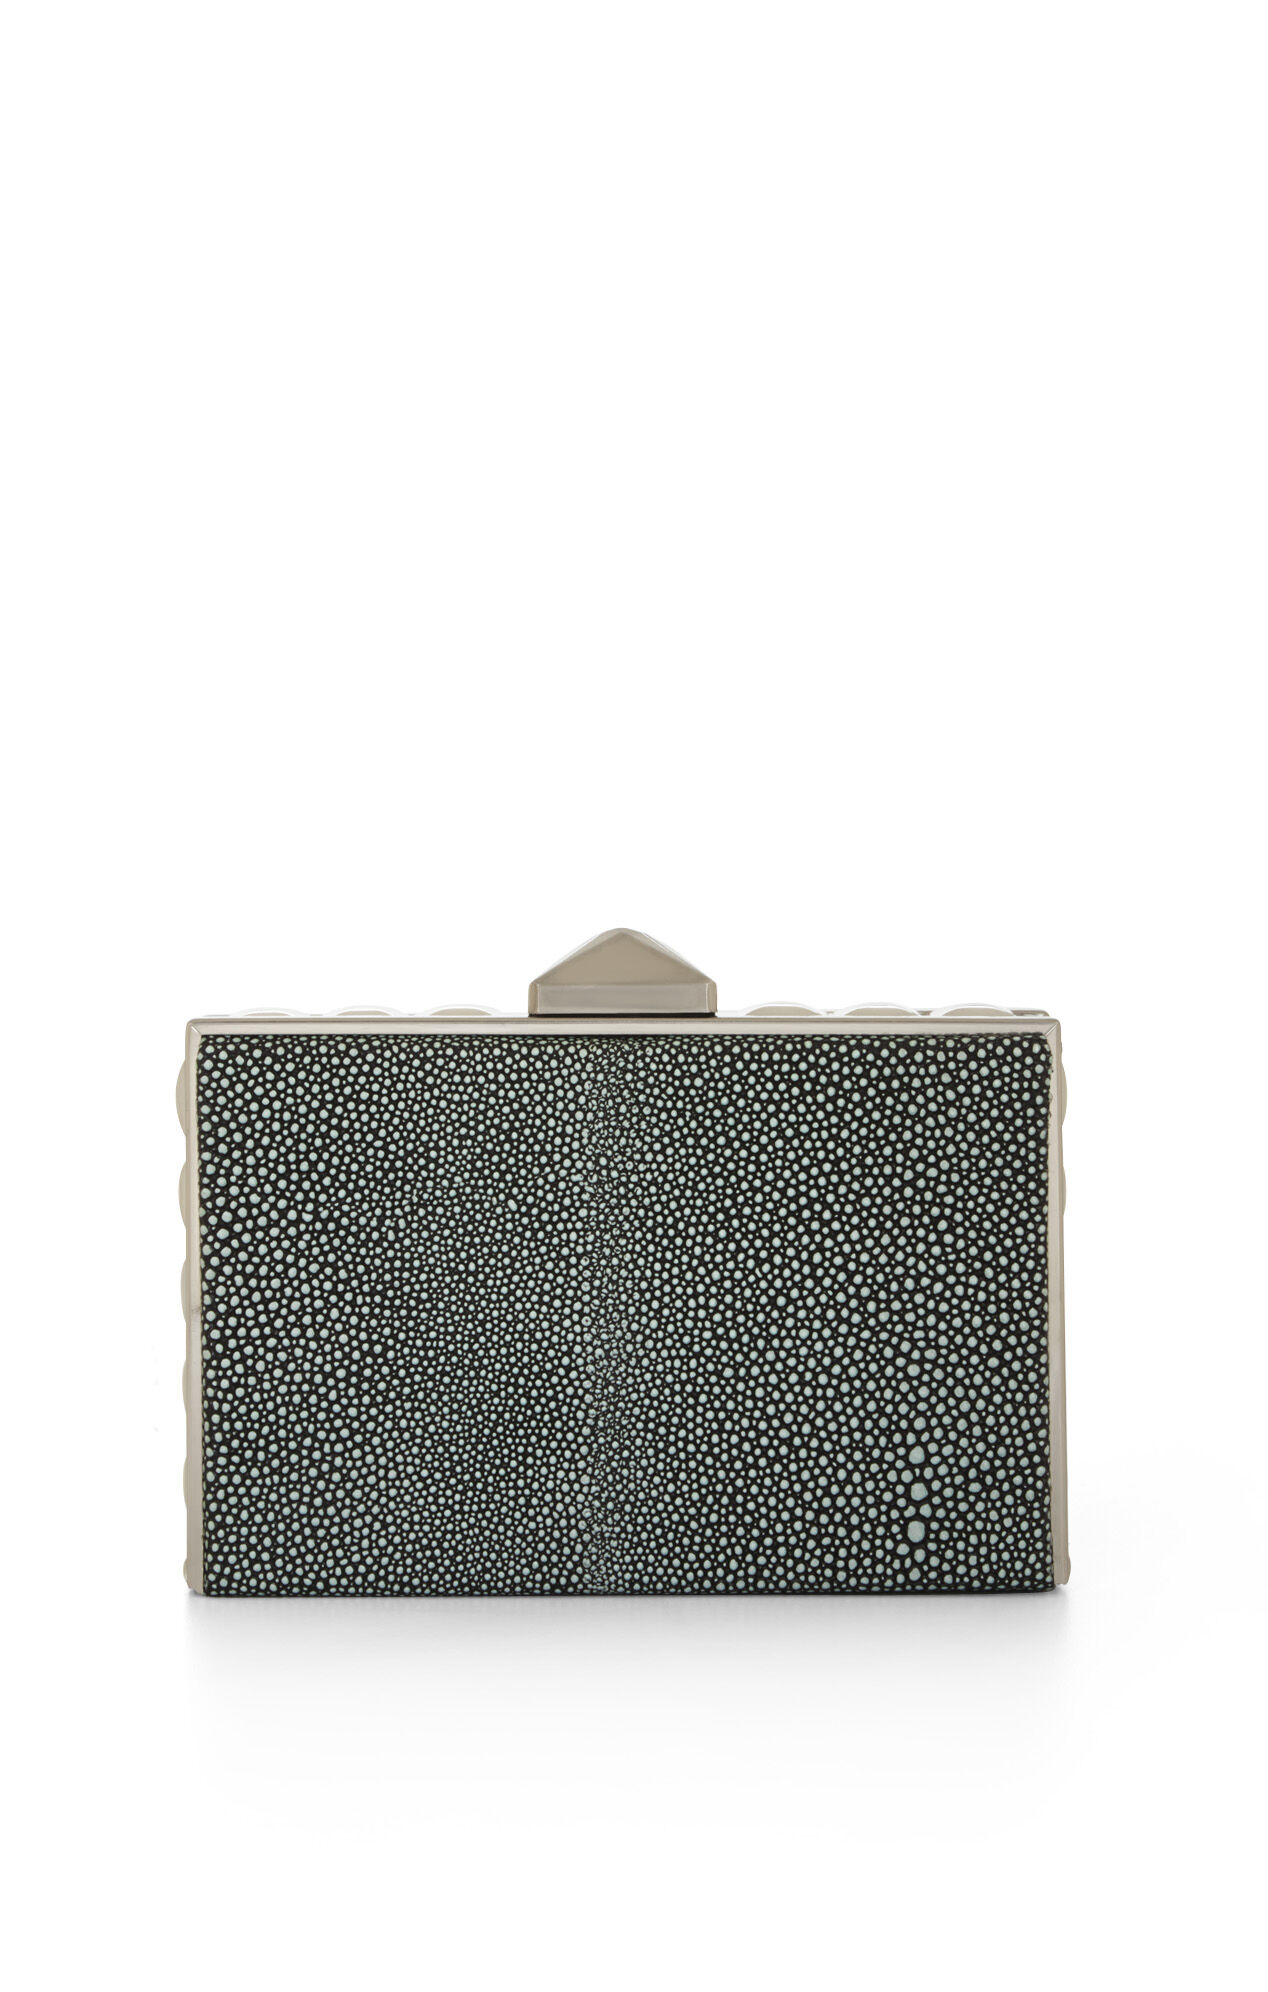 Janis Pyramid Box-Frame Clutch